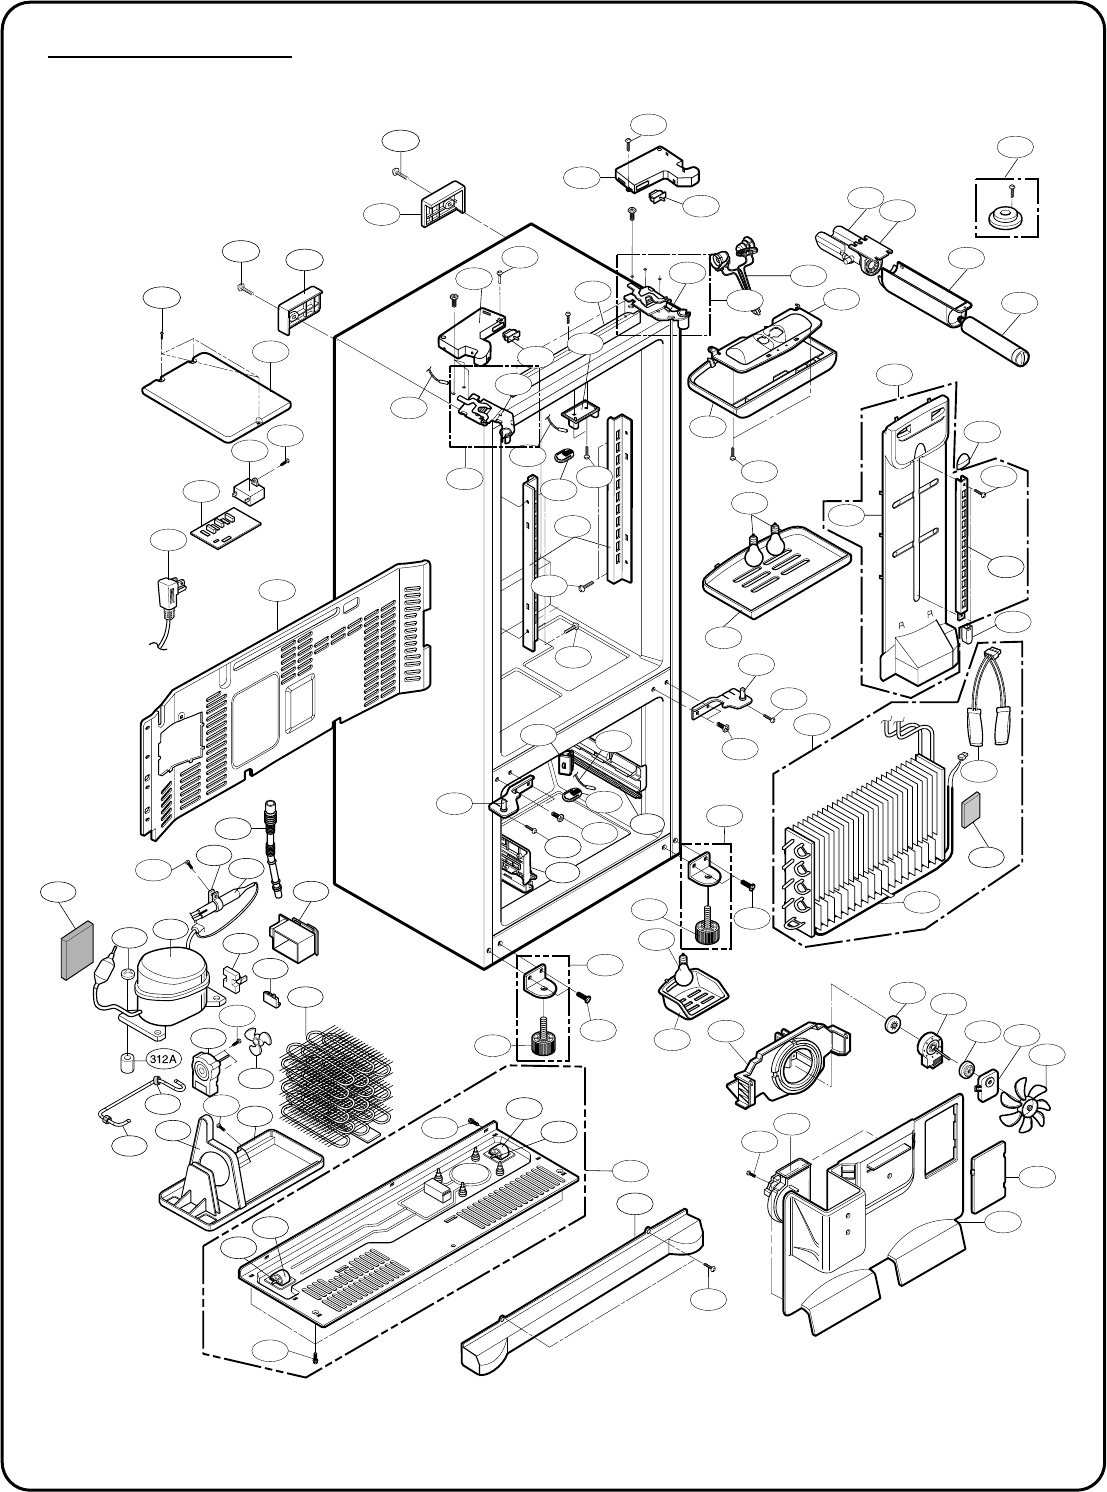 Page 69 of Kenmore Refrigerator 795.775736 User Guide